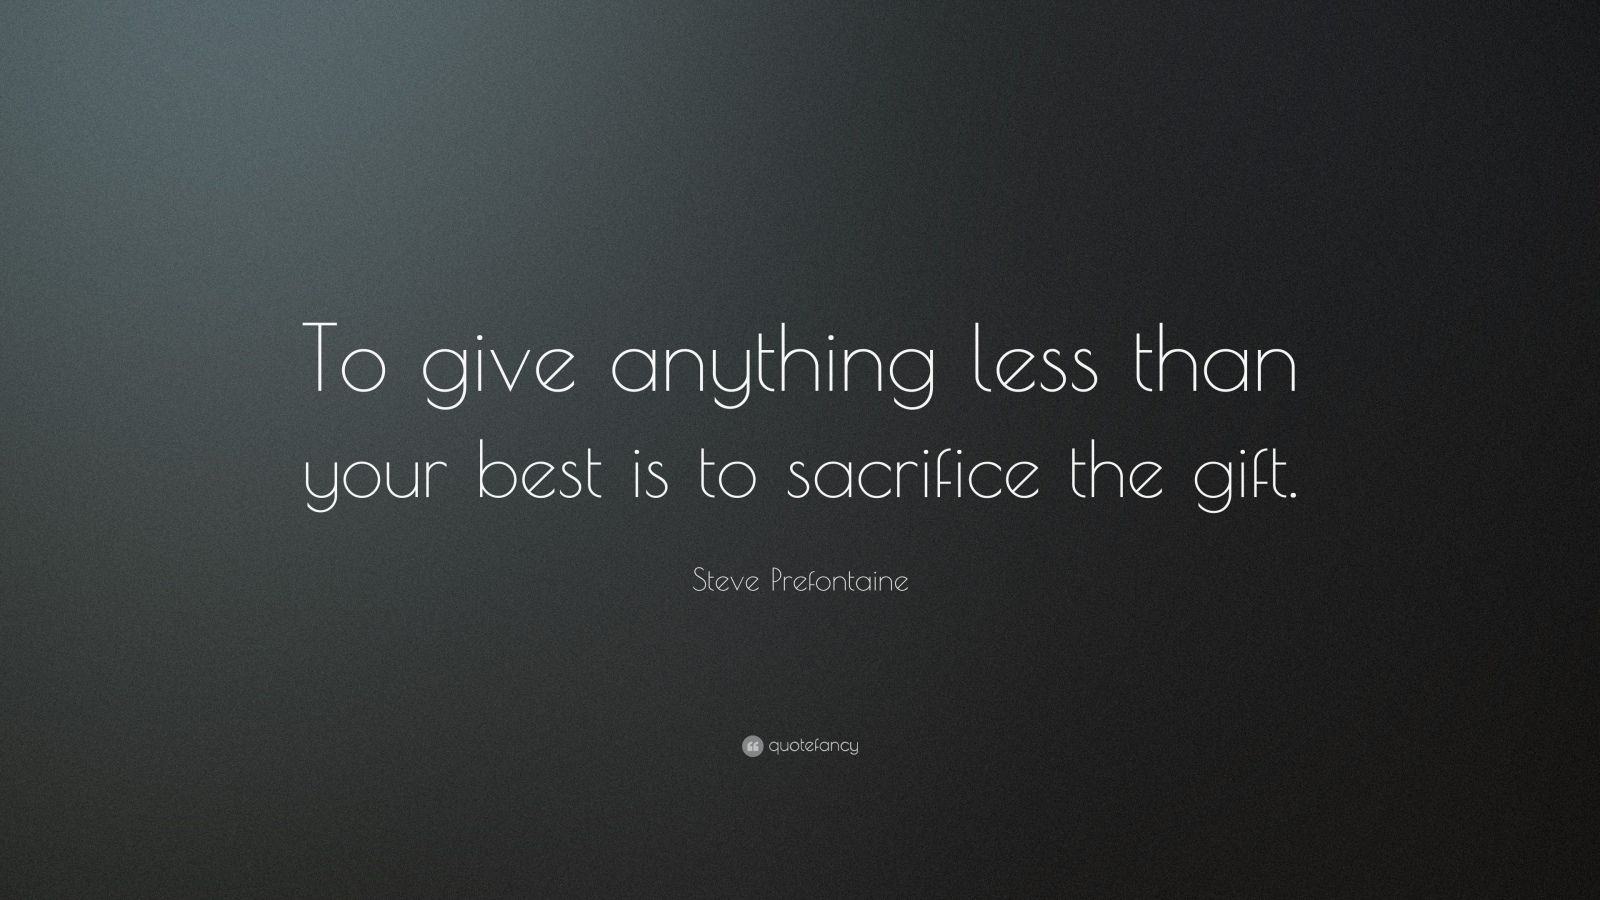 Prefontaine Quotes Wallpaper Steve Prefontaine Quote To Give Anything Less Than Your